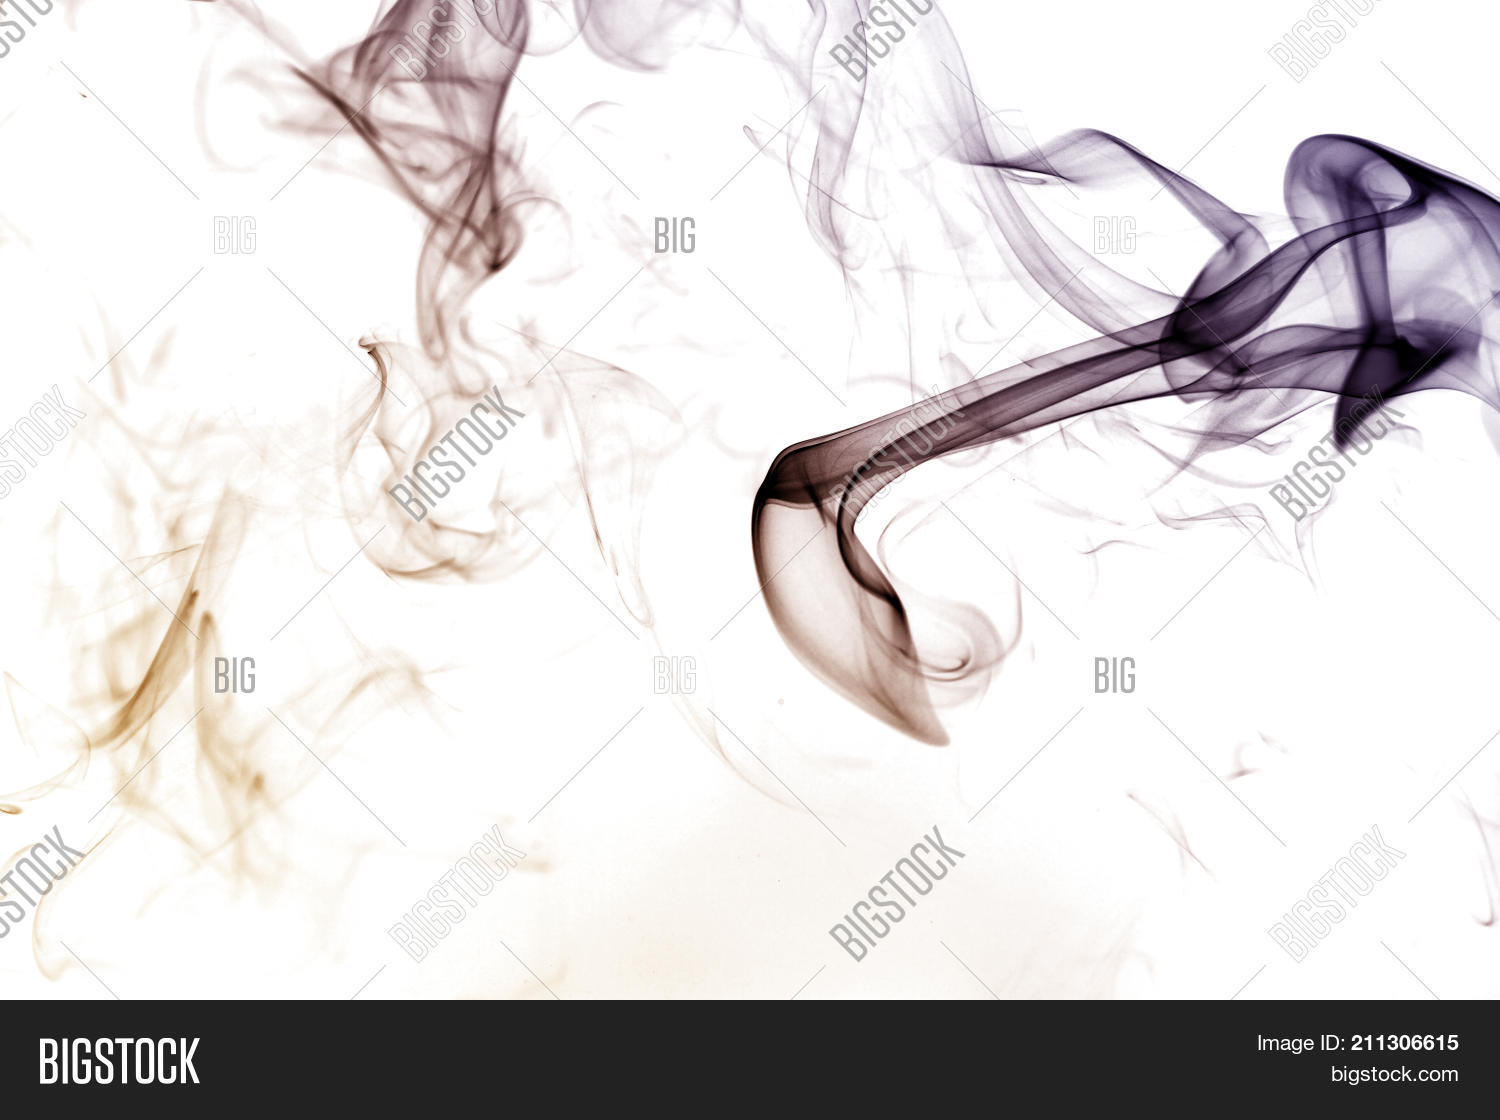 Smoke As Wallpaper Is A Collection Of Airborne Solid And Liquid Particulates Gases